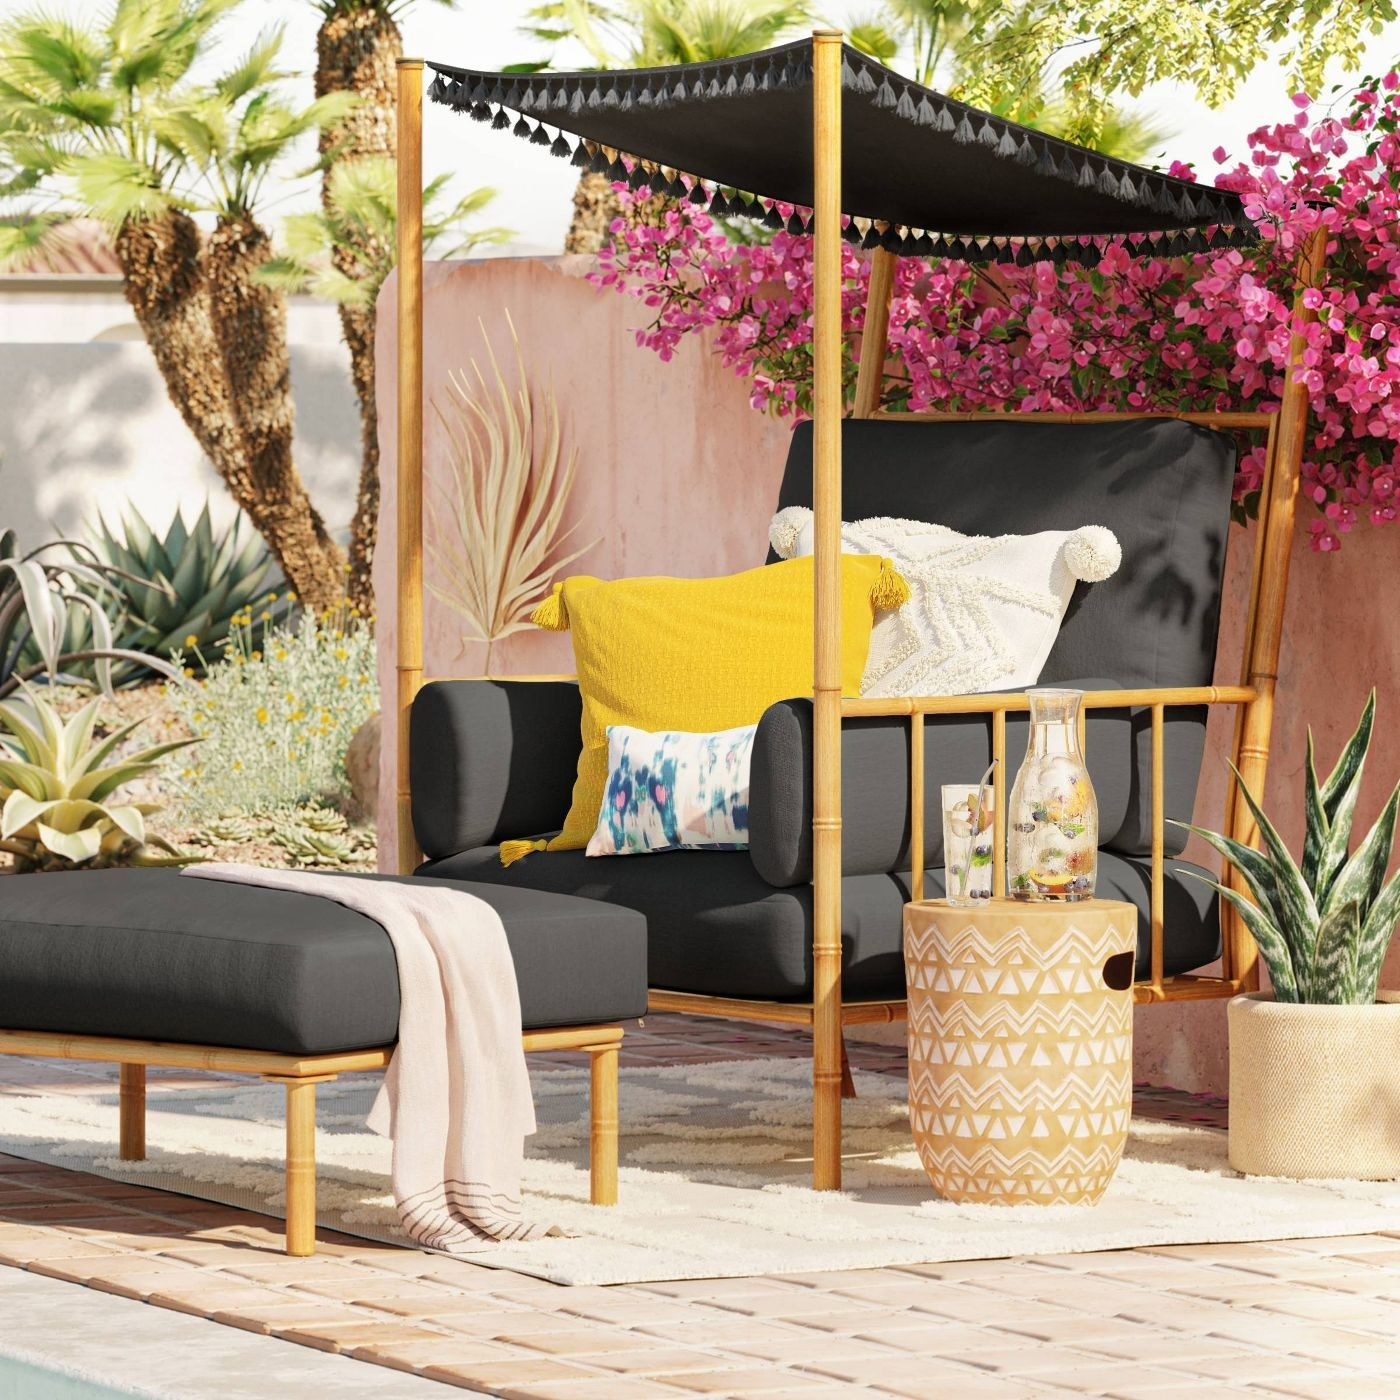 An outdoor canopy chair on a patio